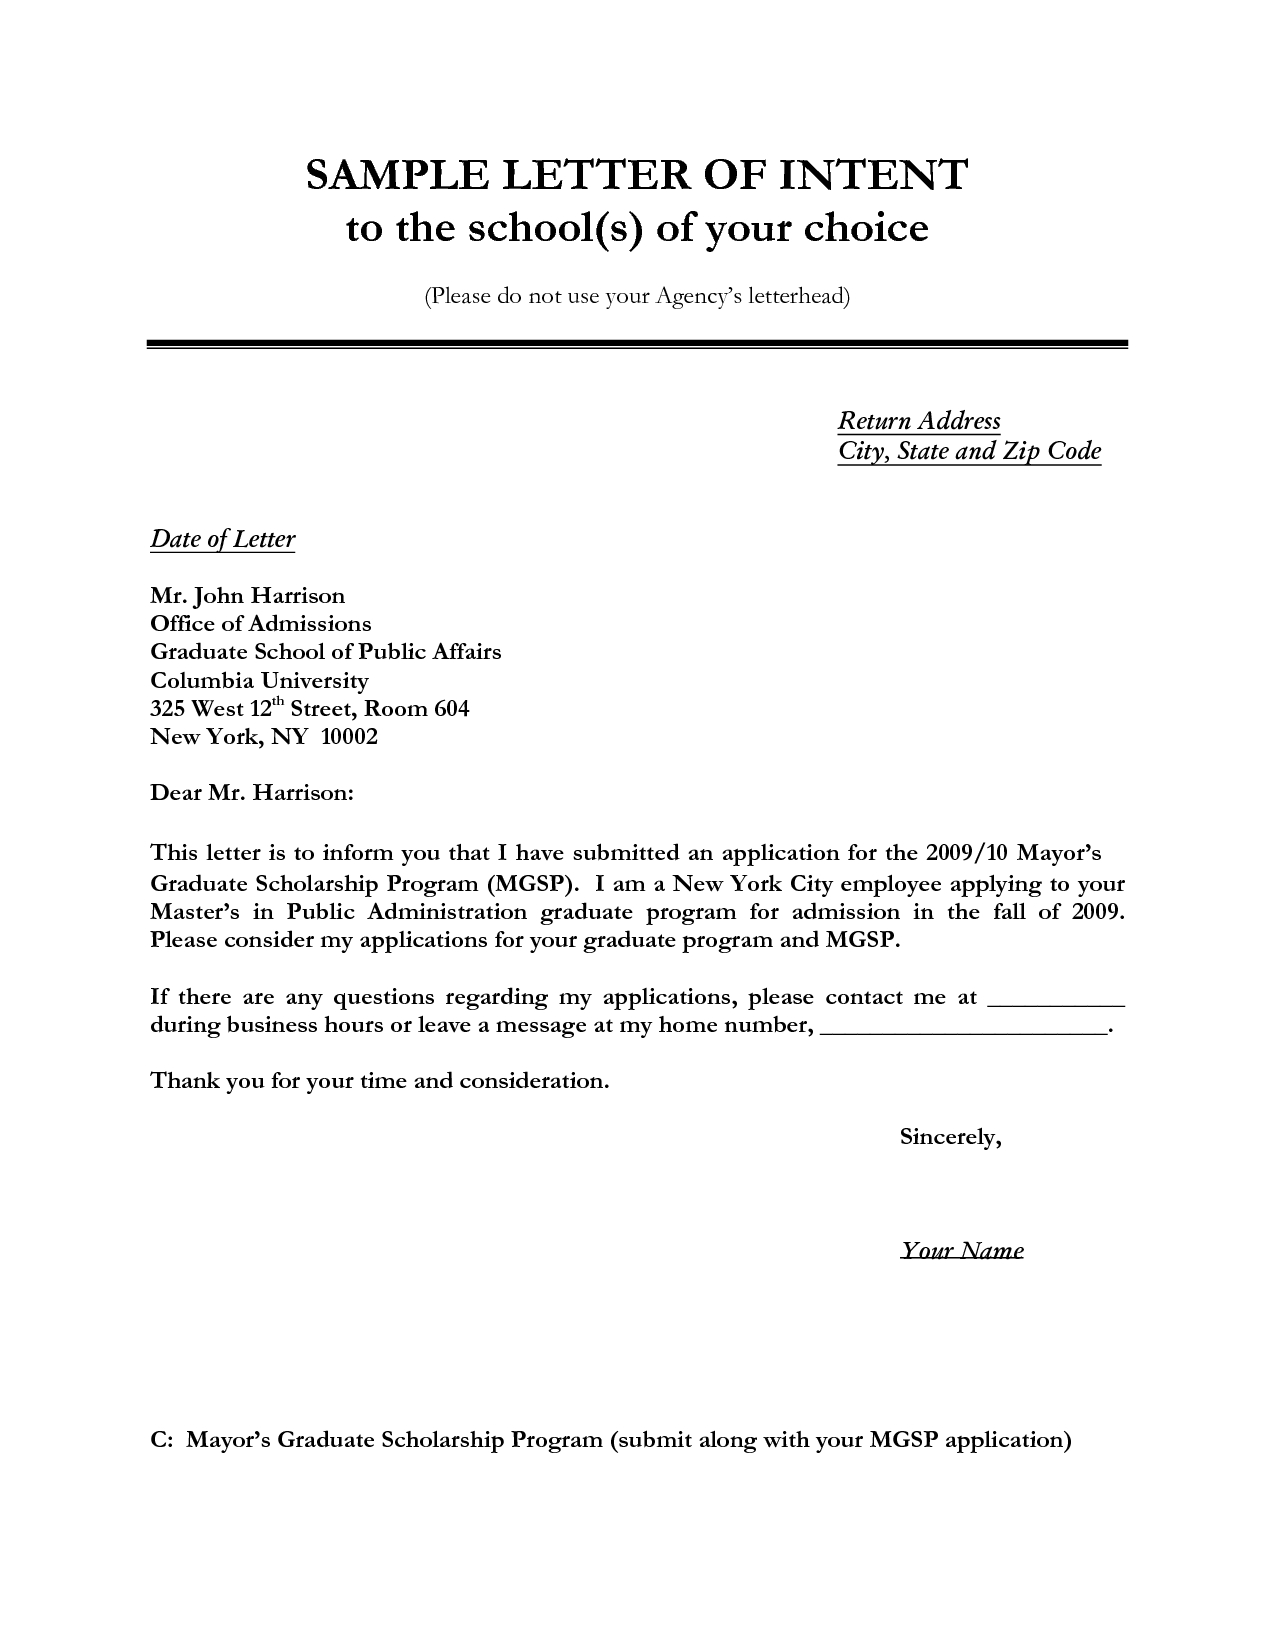 Letter Of Intent to Sell Property Template - Letter Of Intent Sample